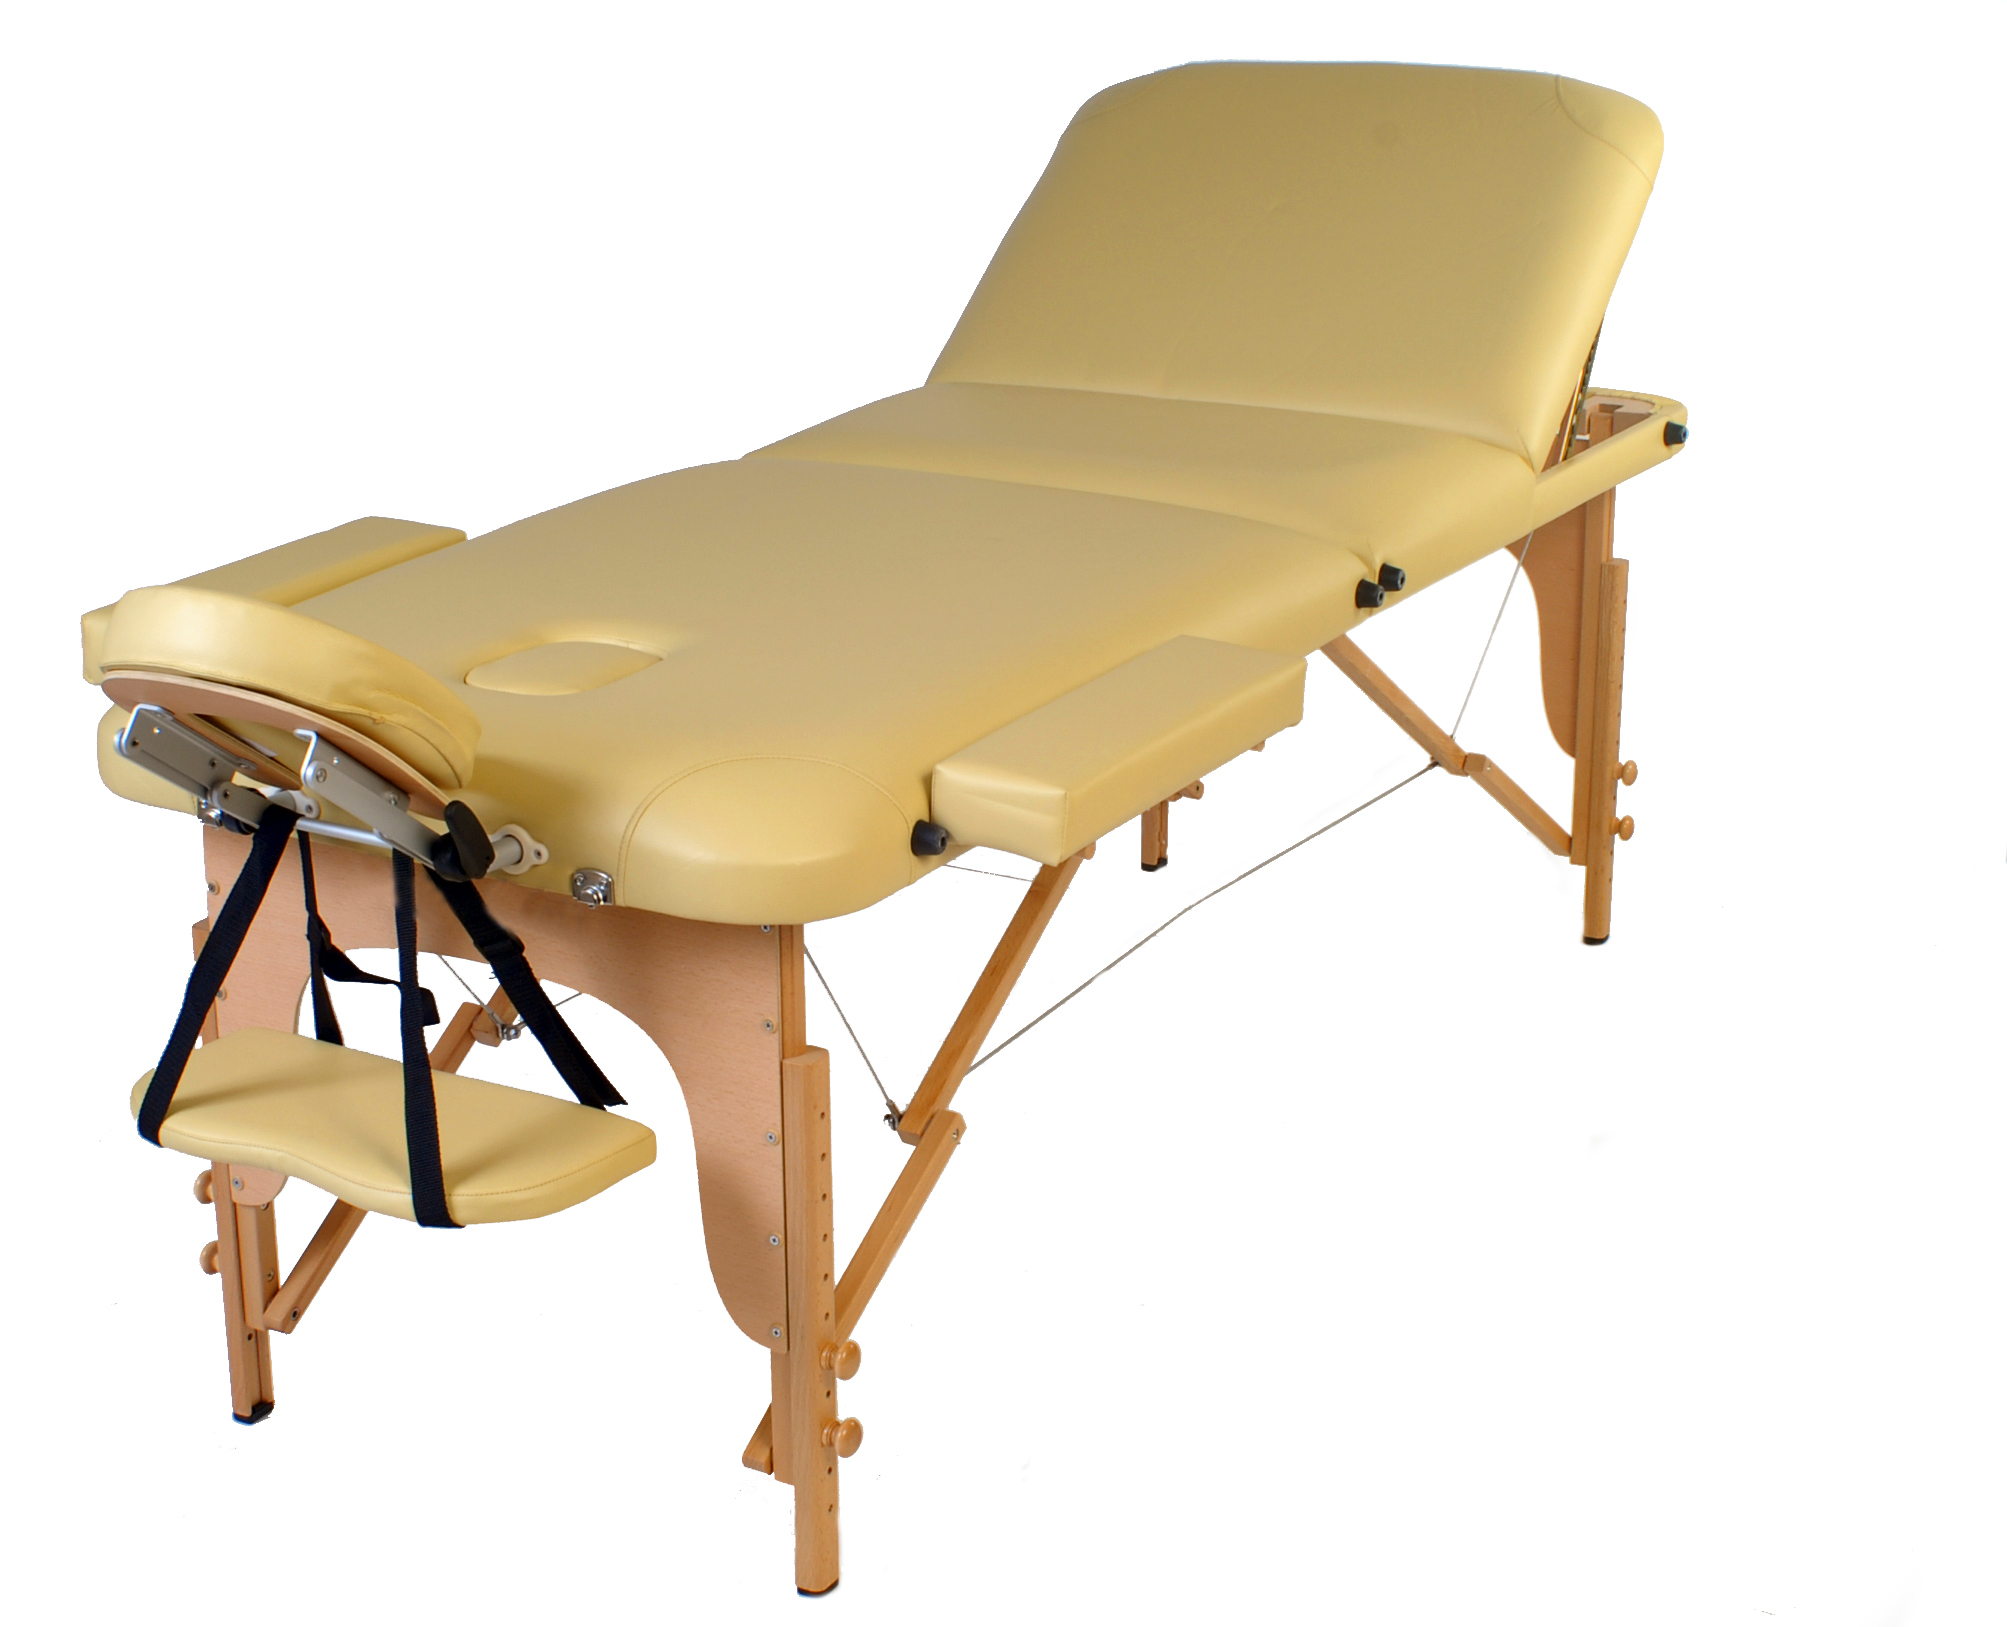 Nos produits  Aurizen SARL, tables de massages pliantes, tables de massage e